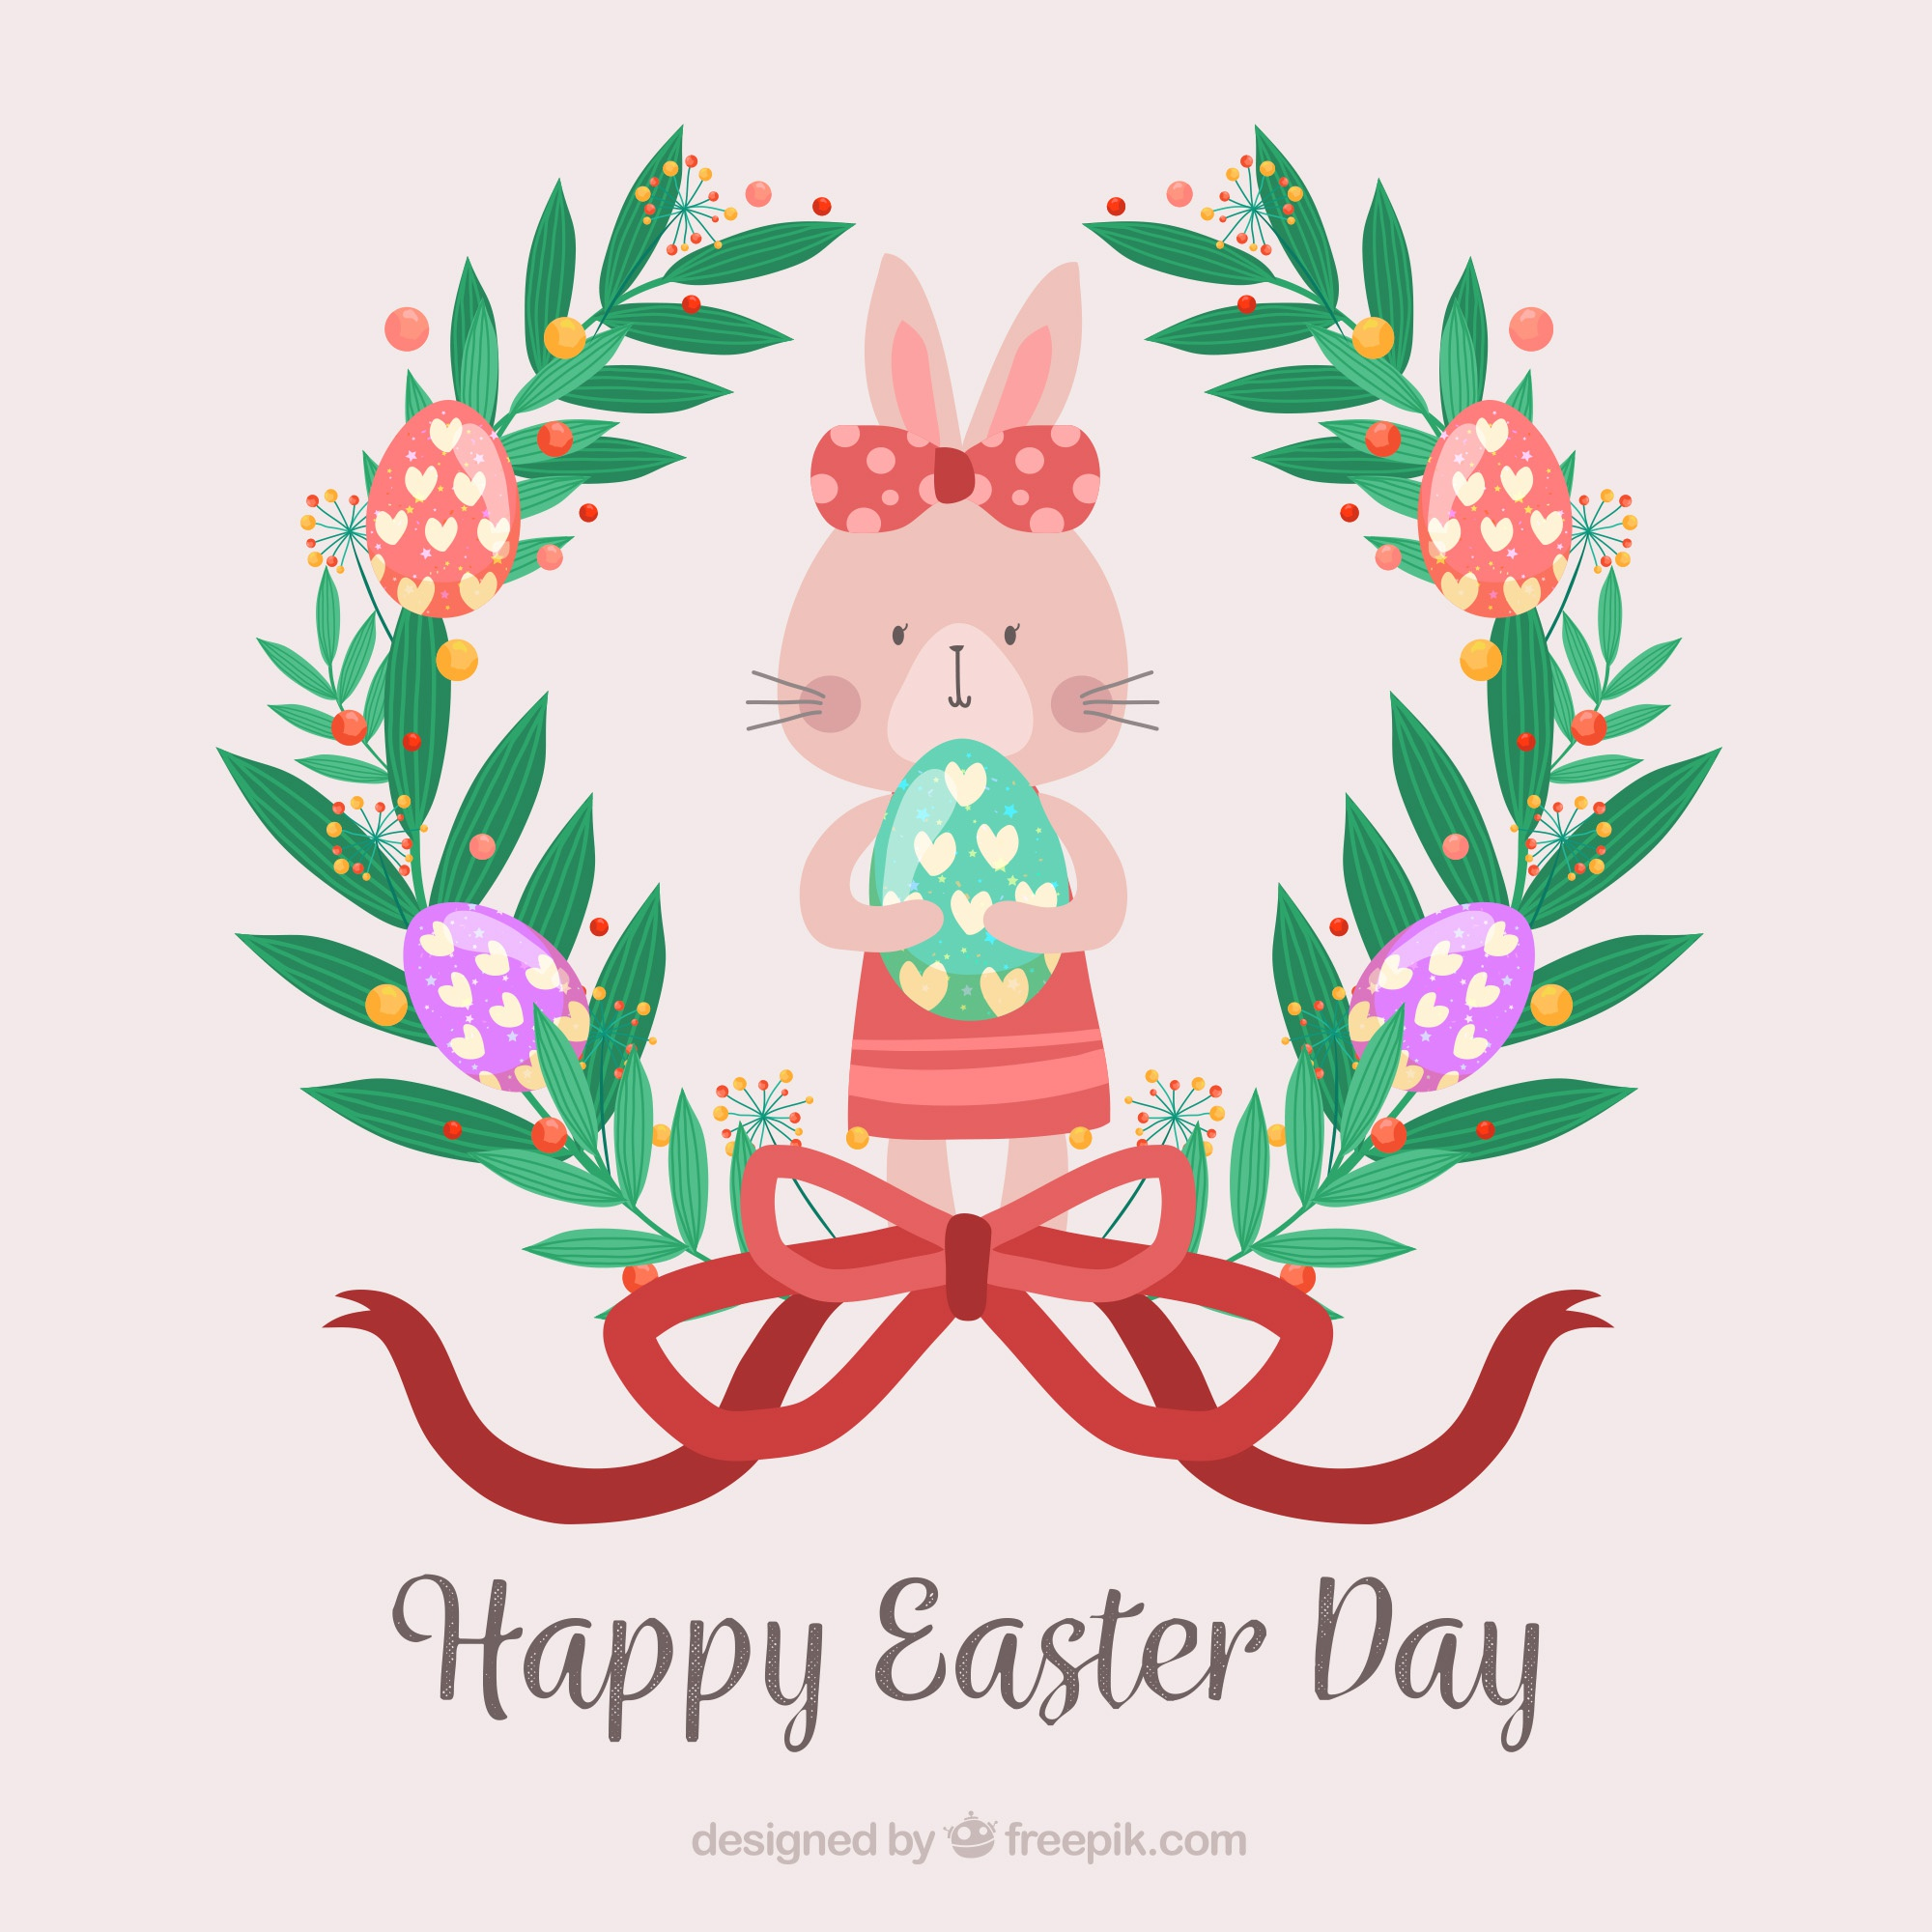 Easter day background with cute bunny